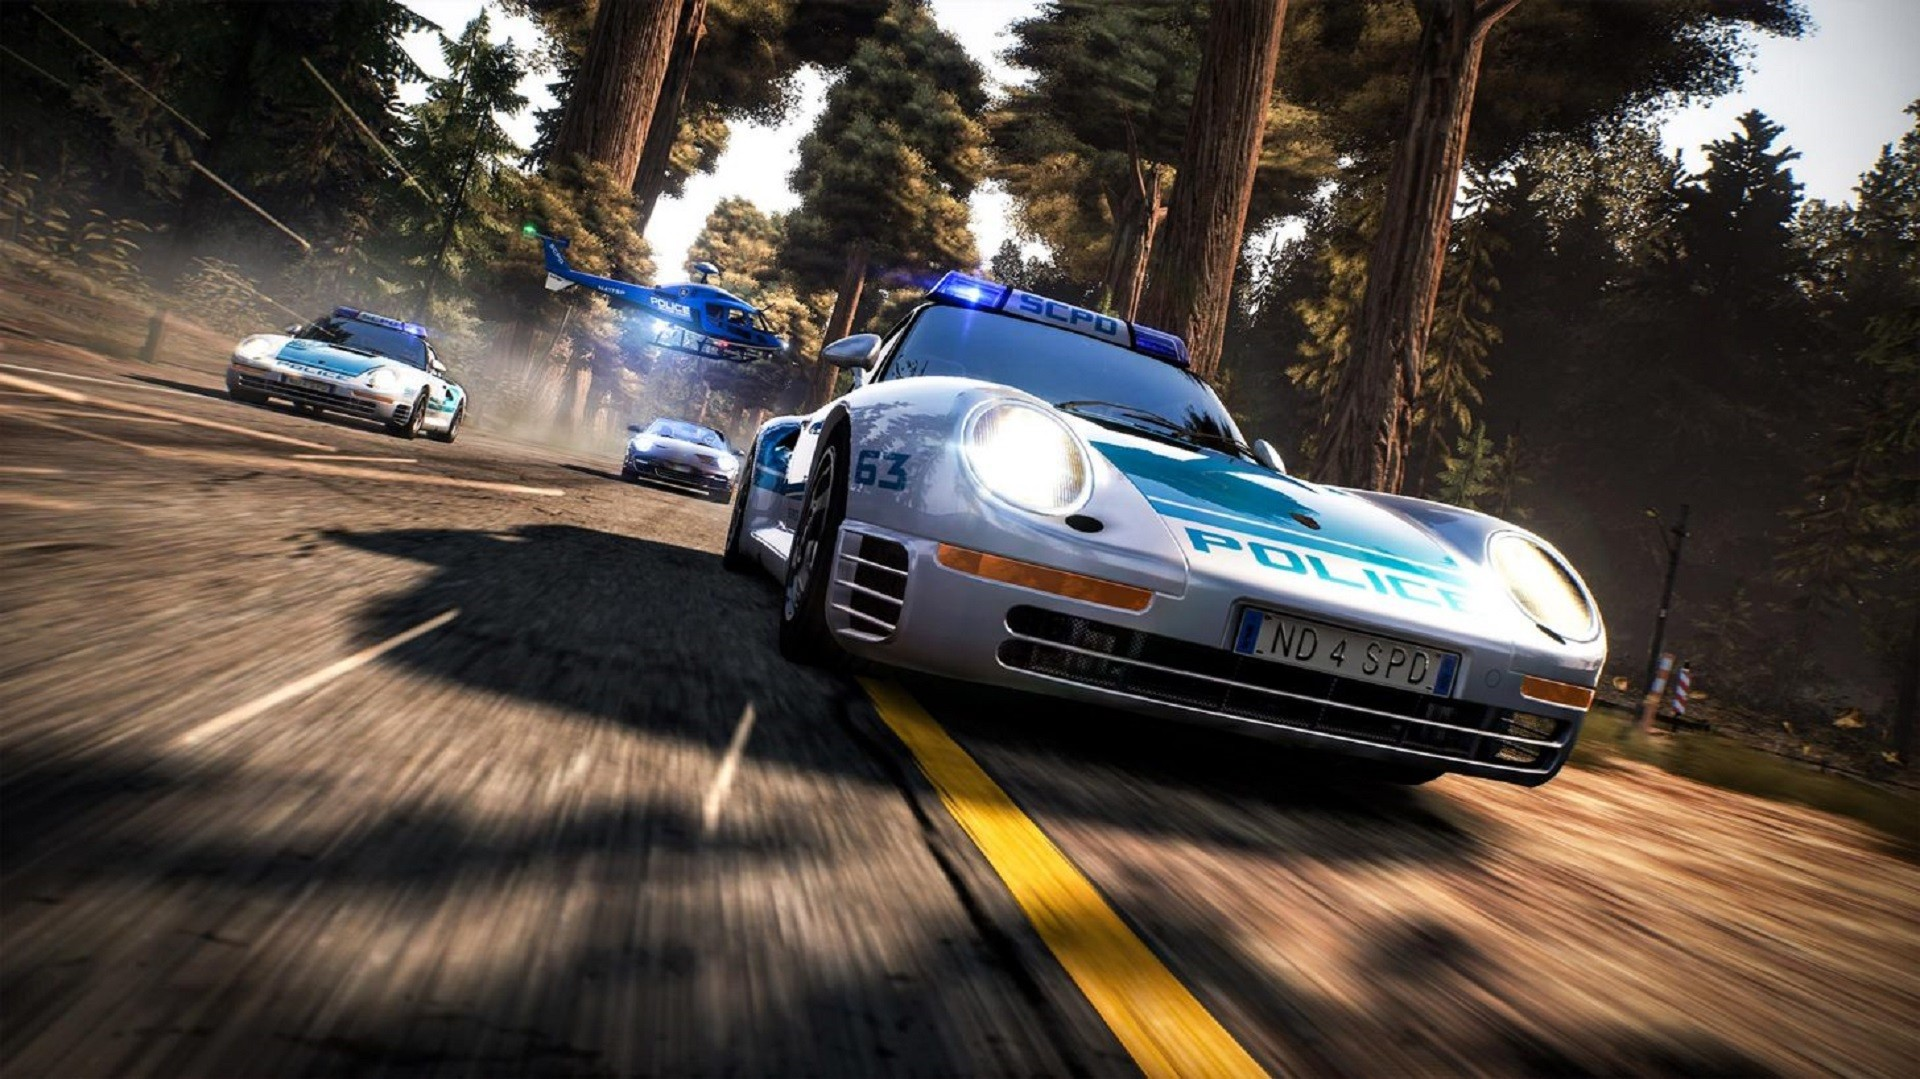 Графика Need for Speed: Hot Pursuit Remastered почти неотличима от оригинала 2010 года